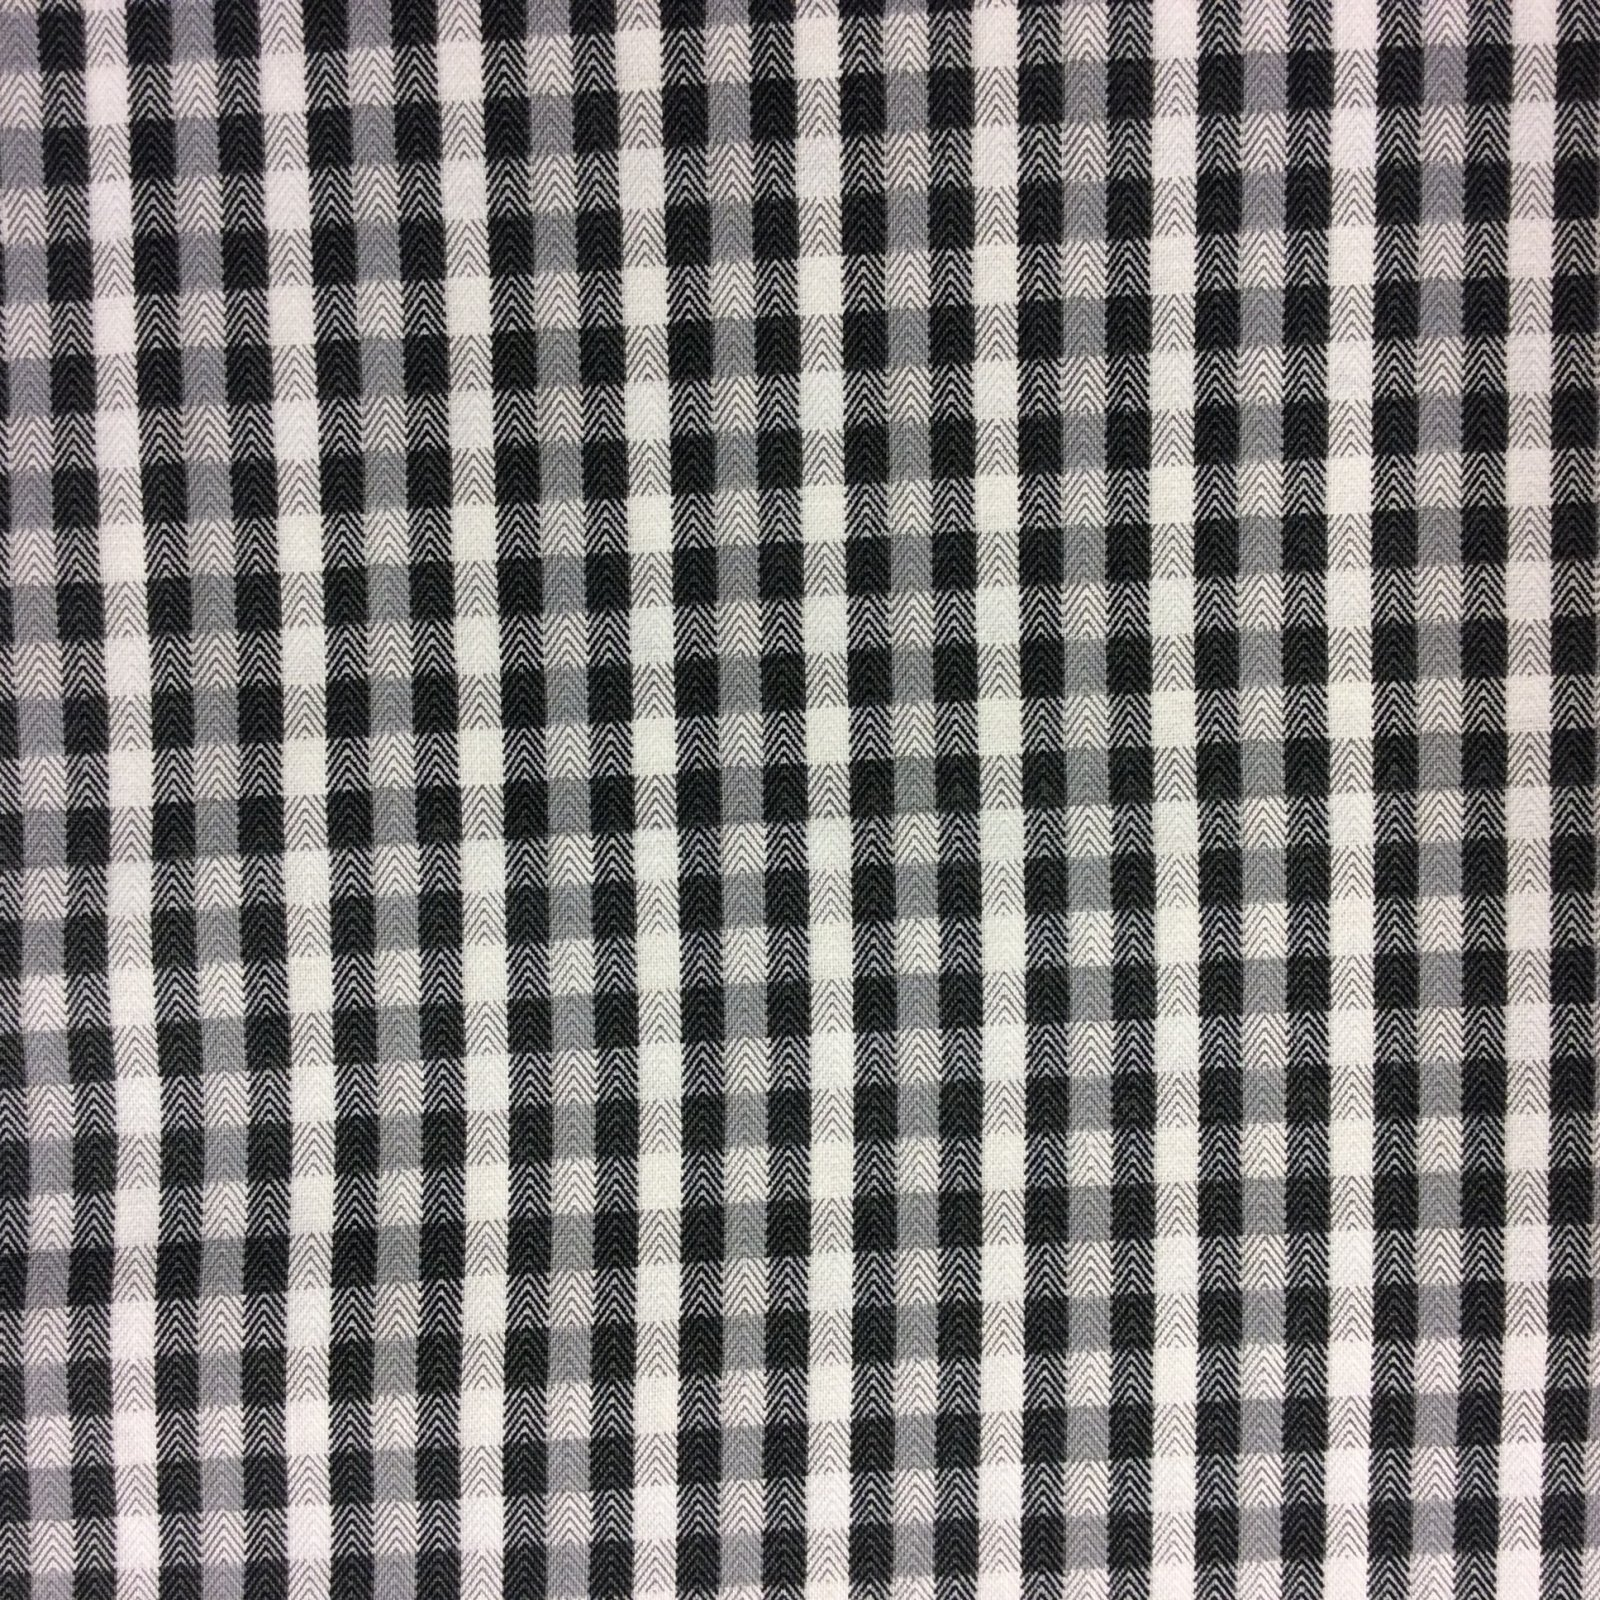 Gingham Modern Check Herringbone Plaid Grey White Cotton Quilt Fabric MD70